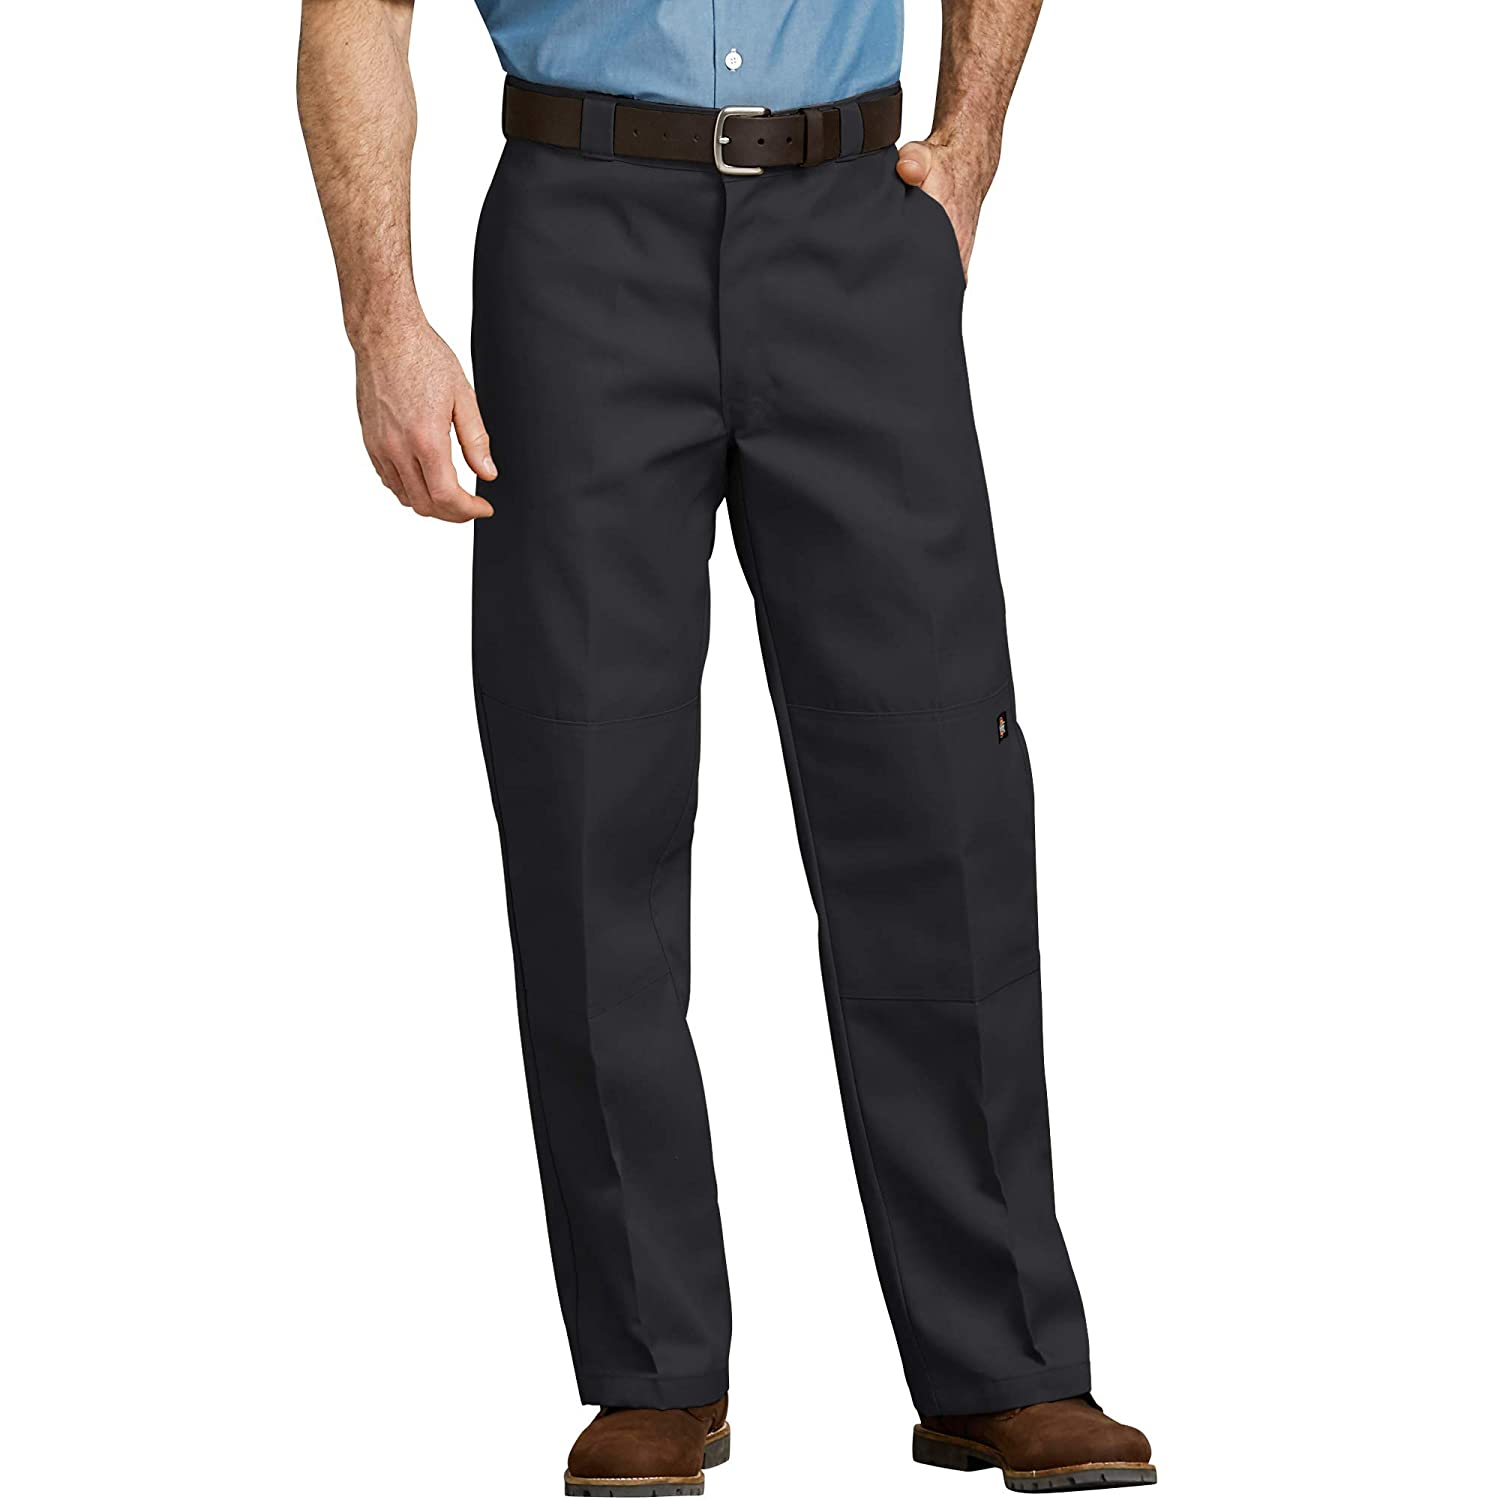 Dickies Double Knee Work Pant - Pantalones Hombre